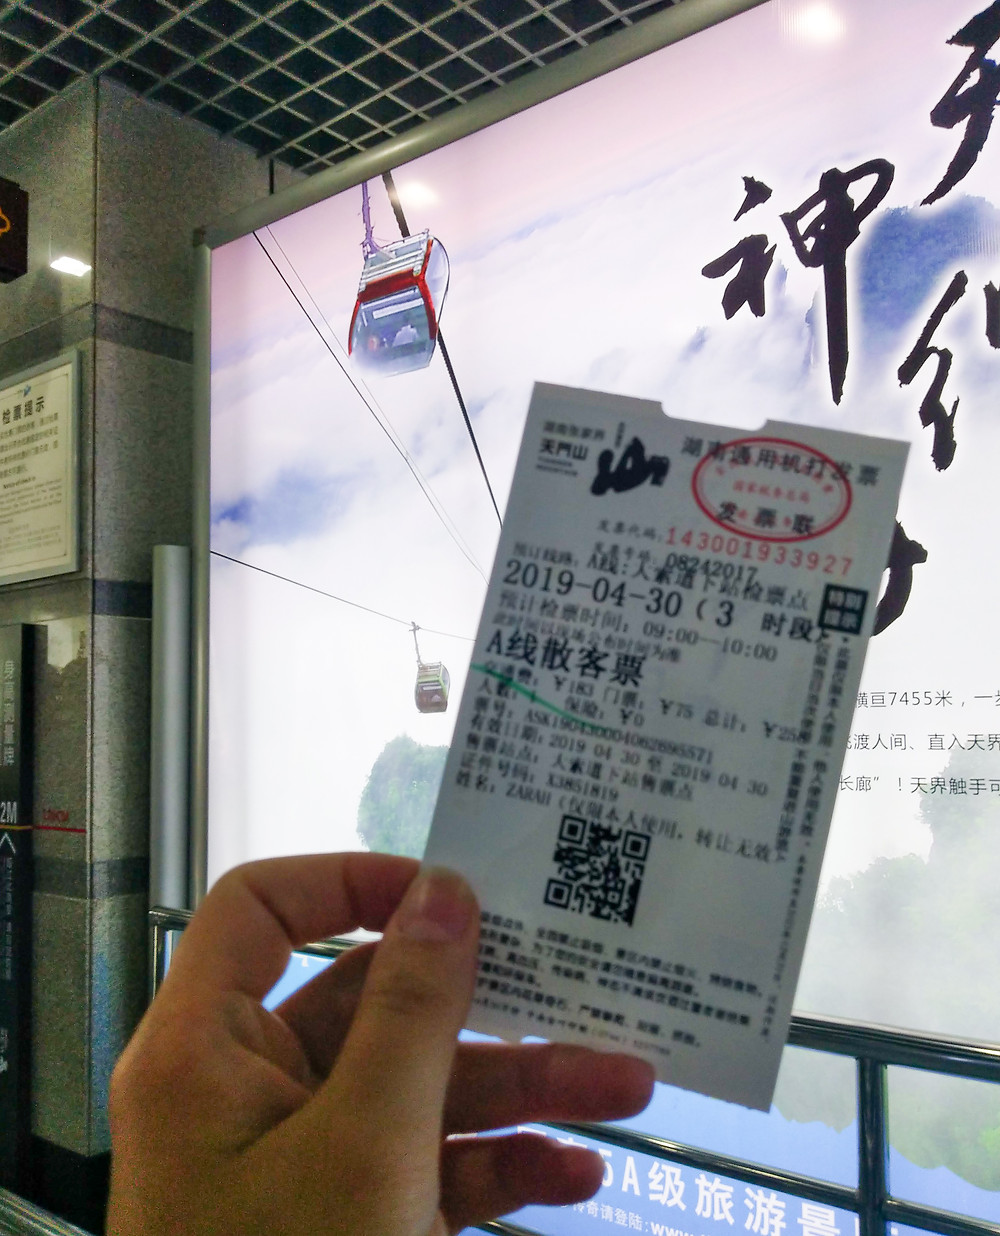 Tianmen Mountain Cablecar Ticket